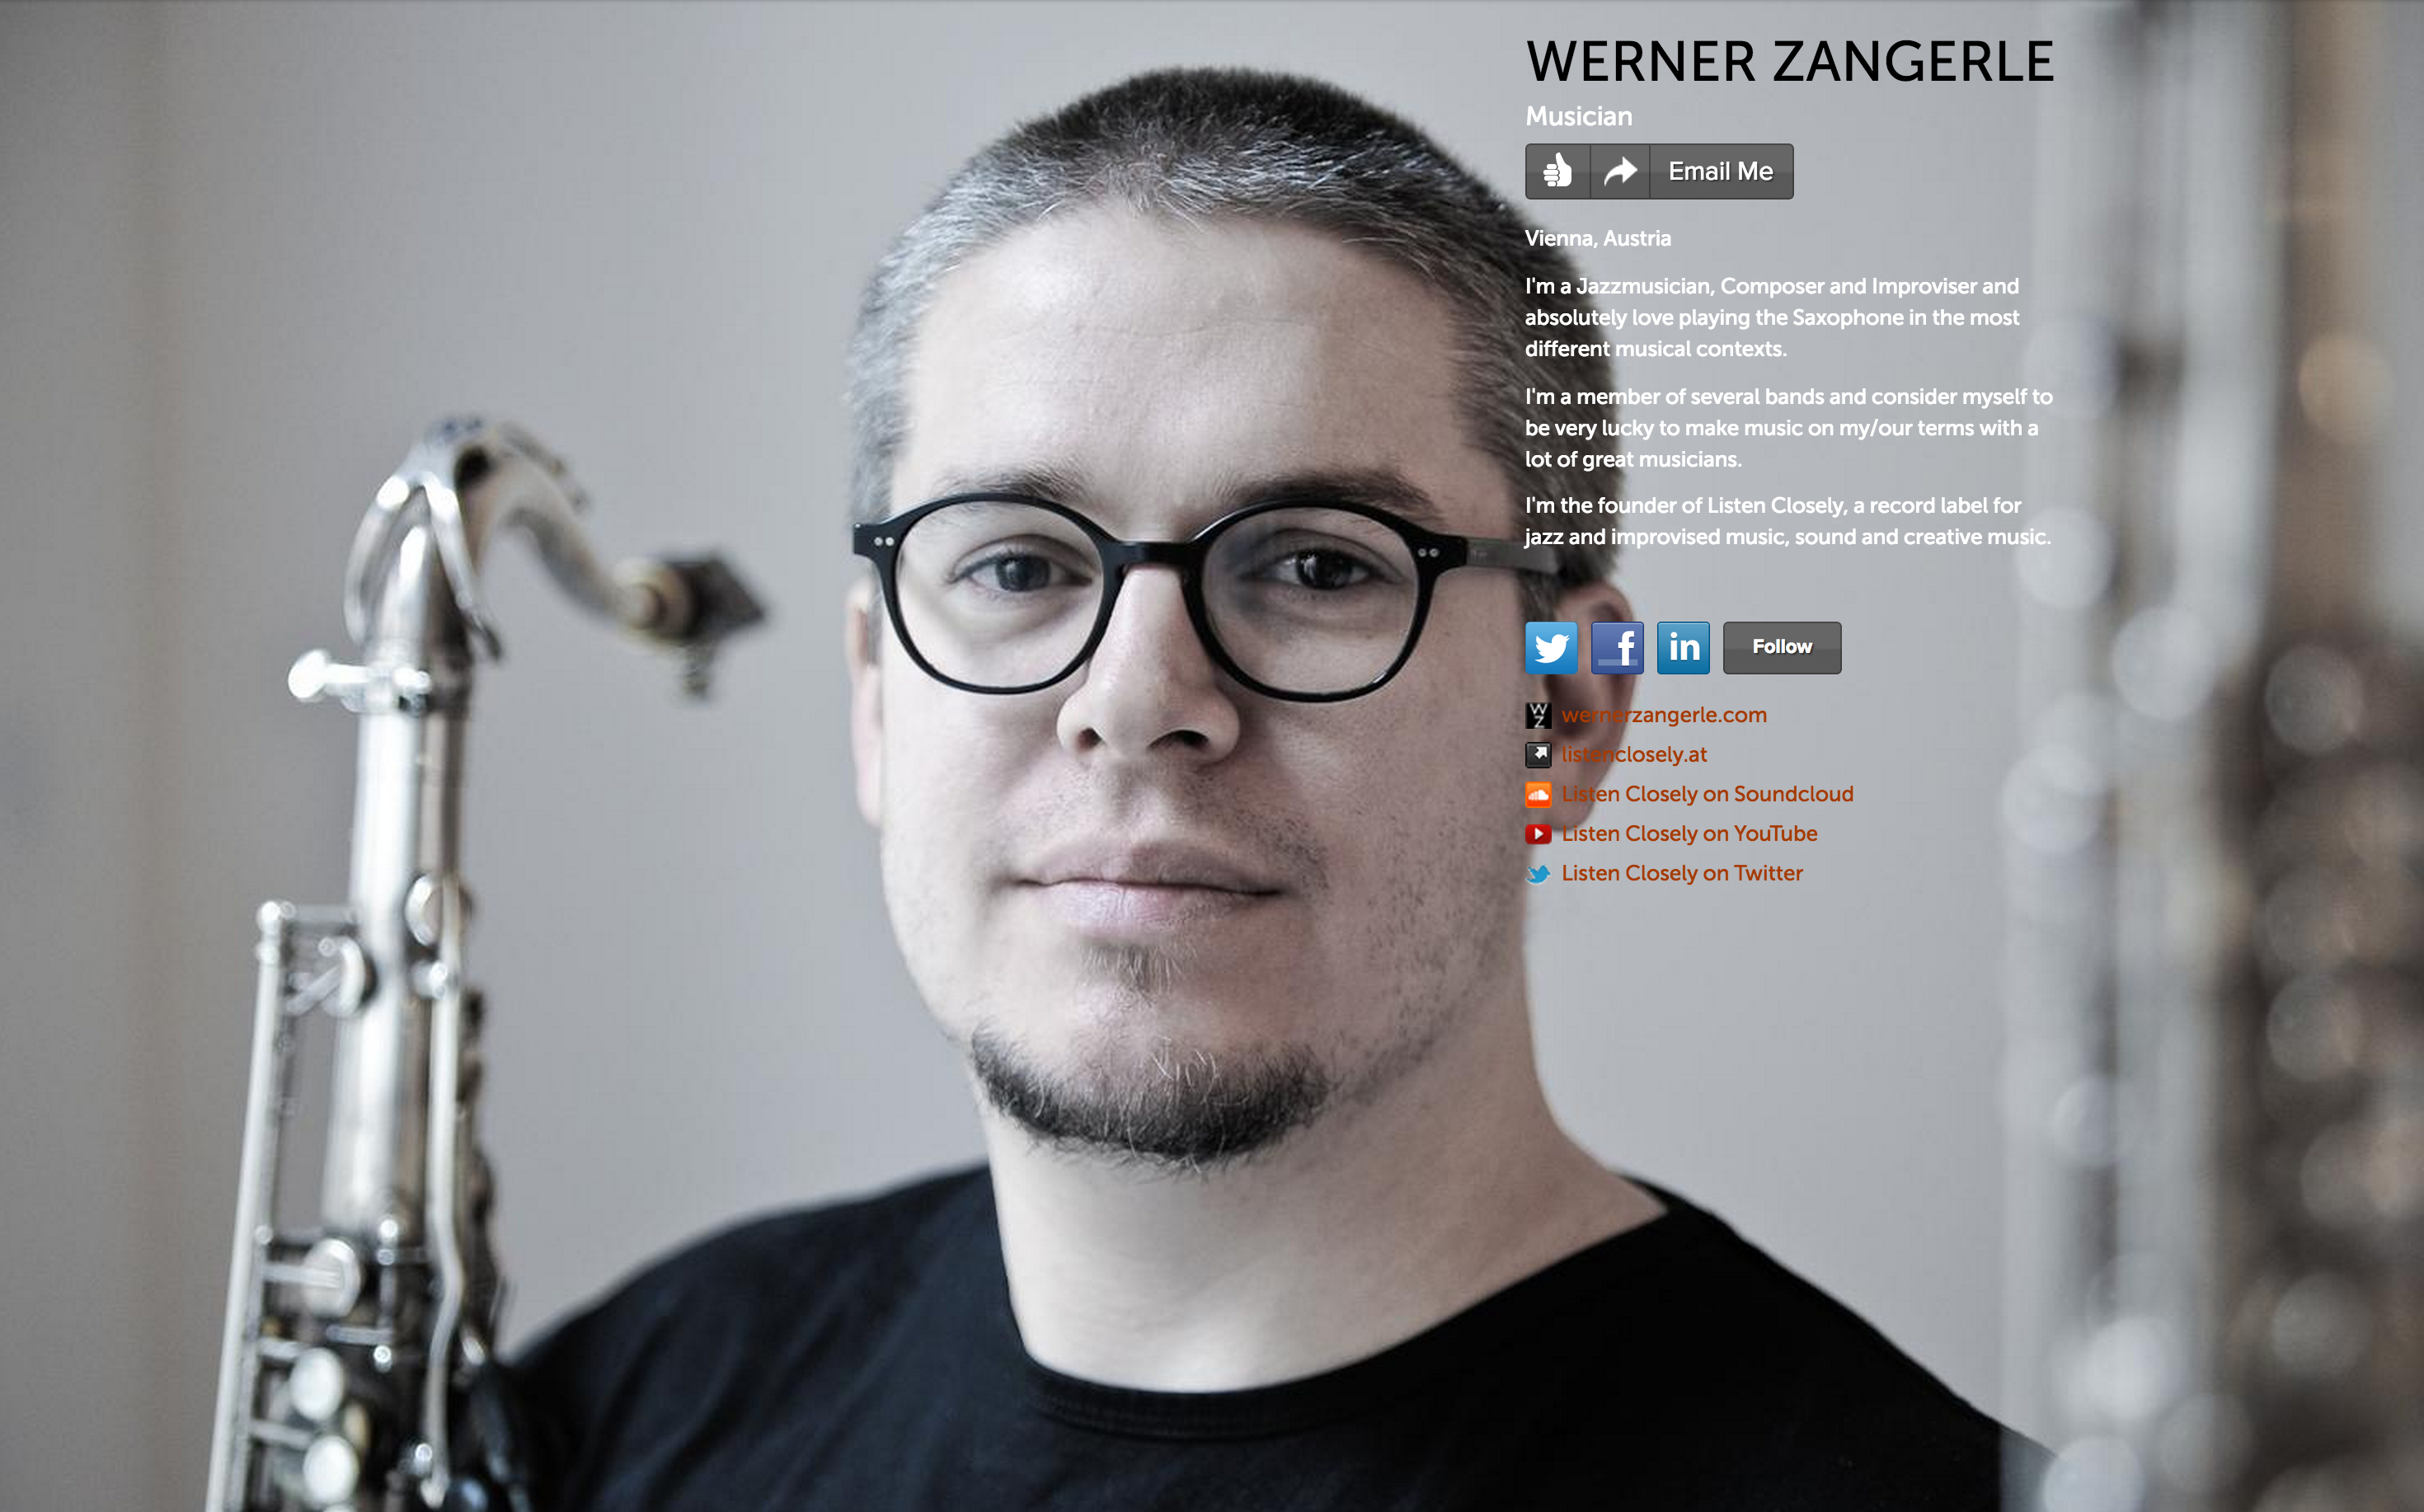 Werner Zangerle on about.me